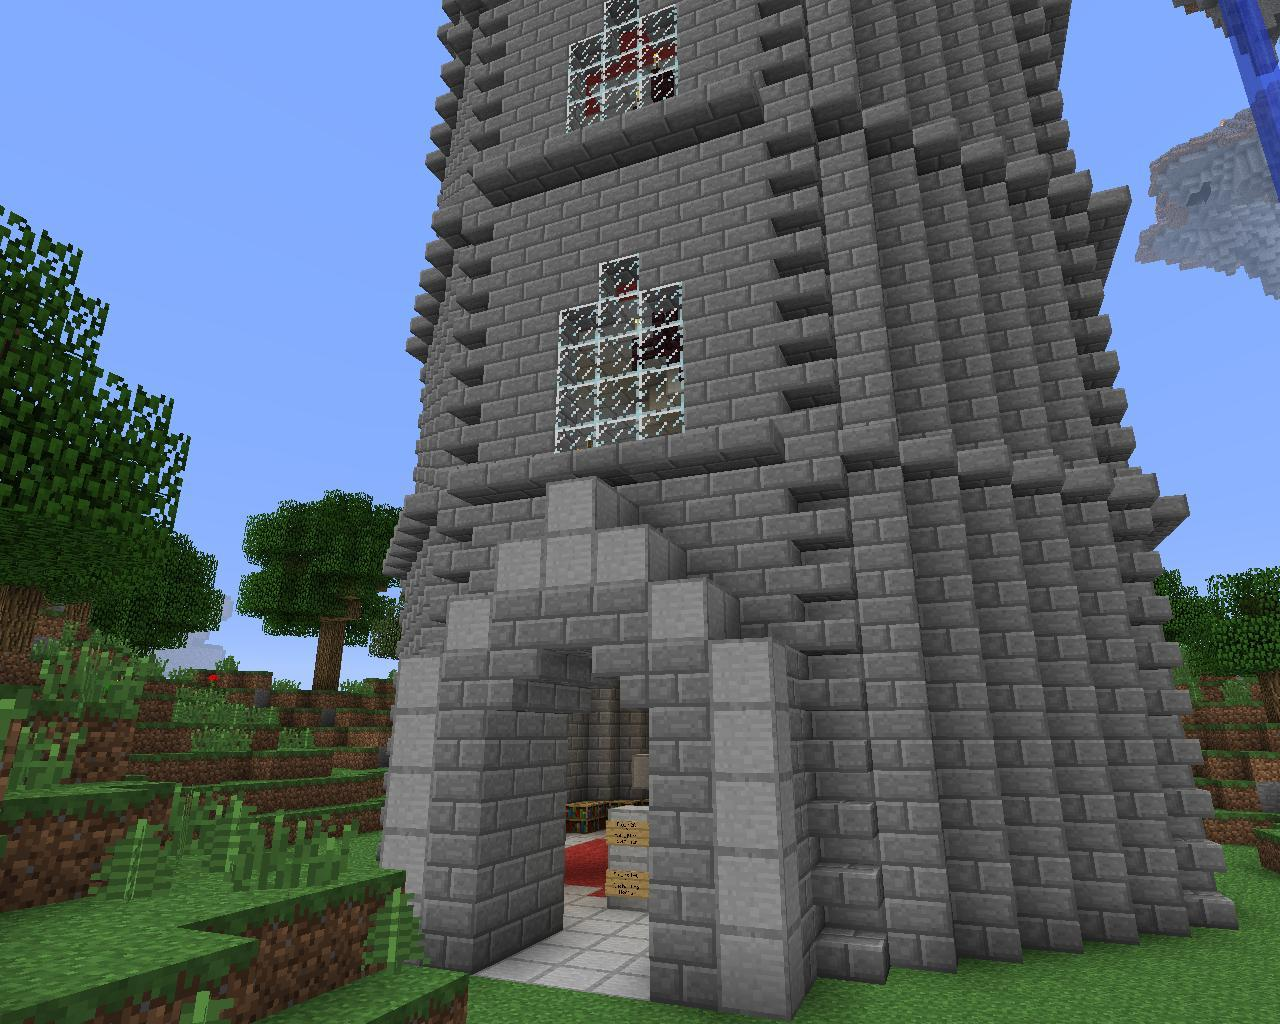 The celestial tower minecraft project